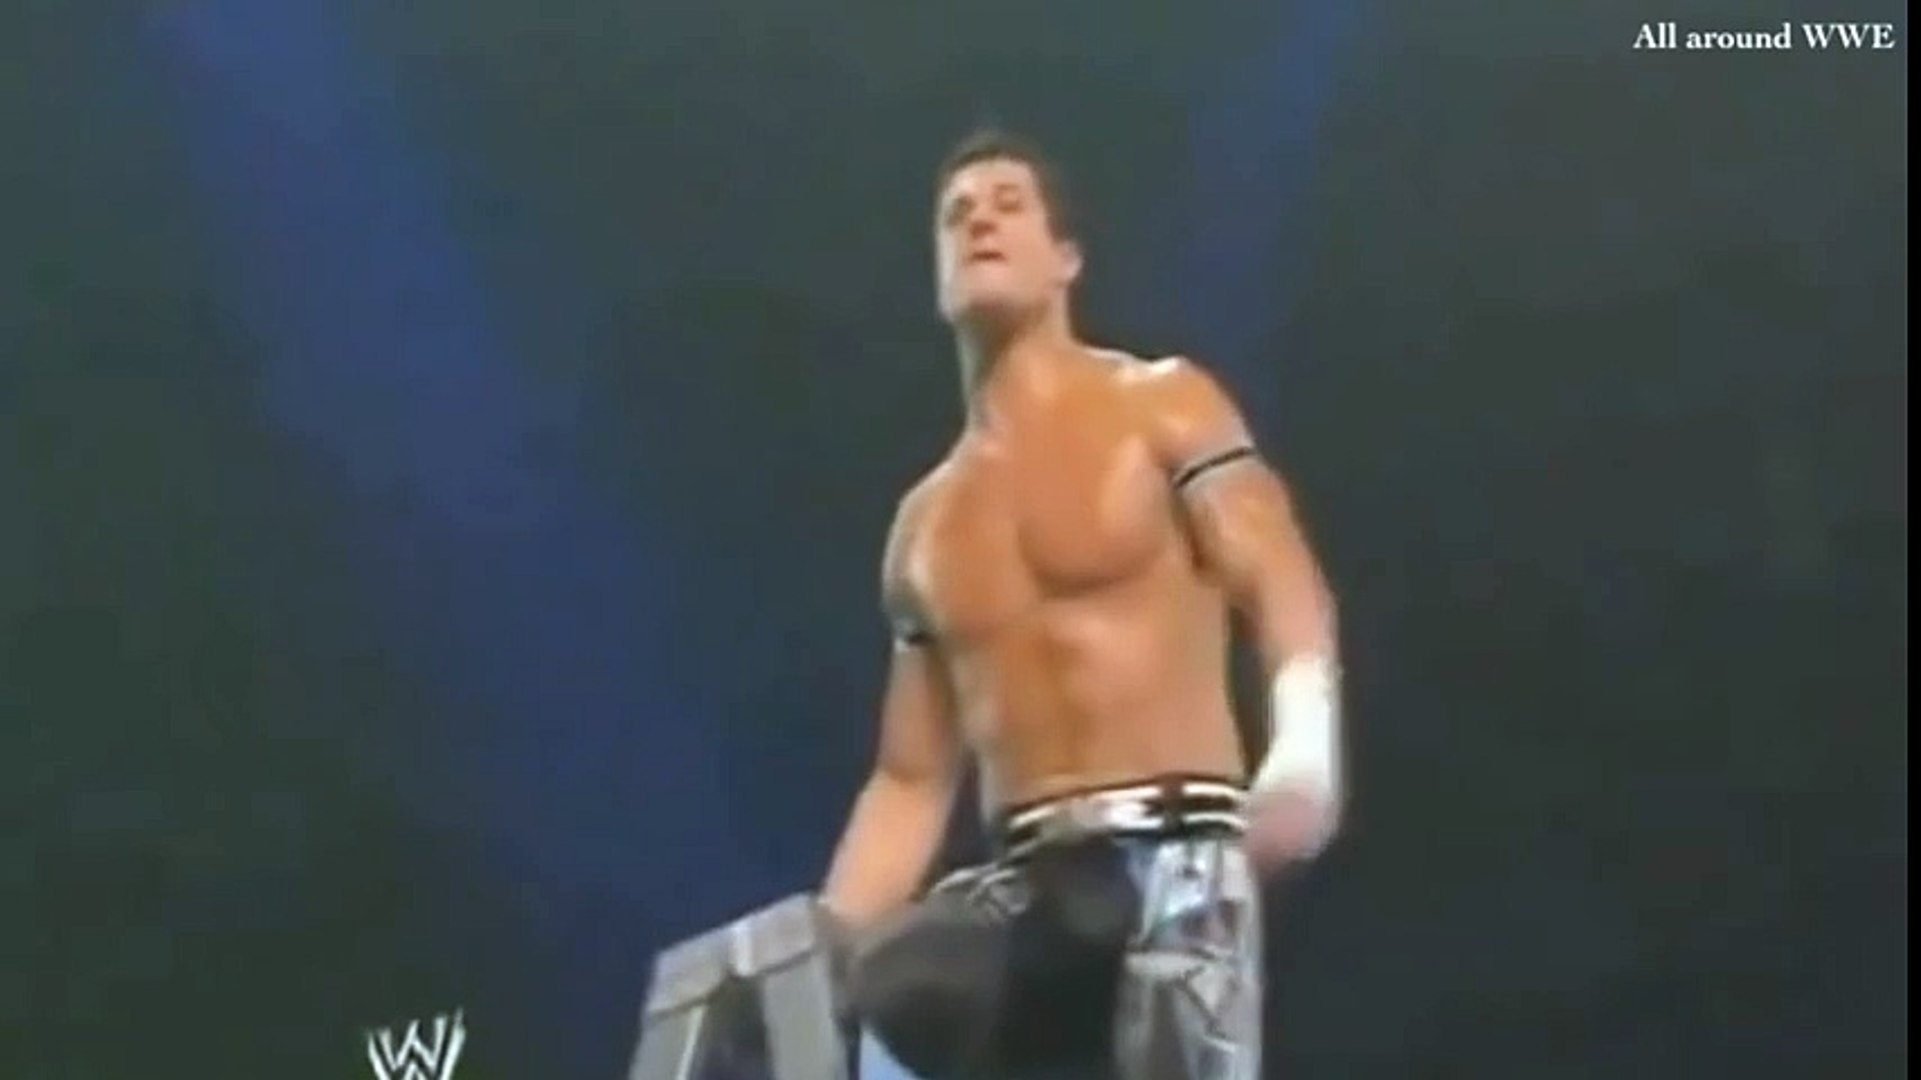 WWE Evan Bourne Shooting star press off the Ladder Slow Motion Replay from Money In The Bank 2011